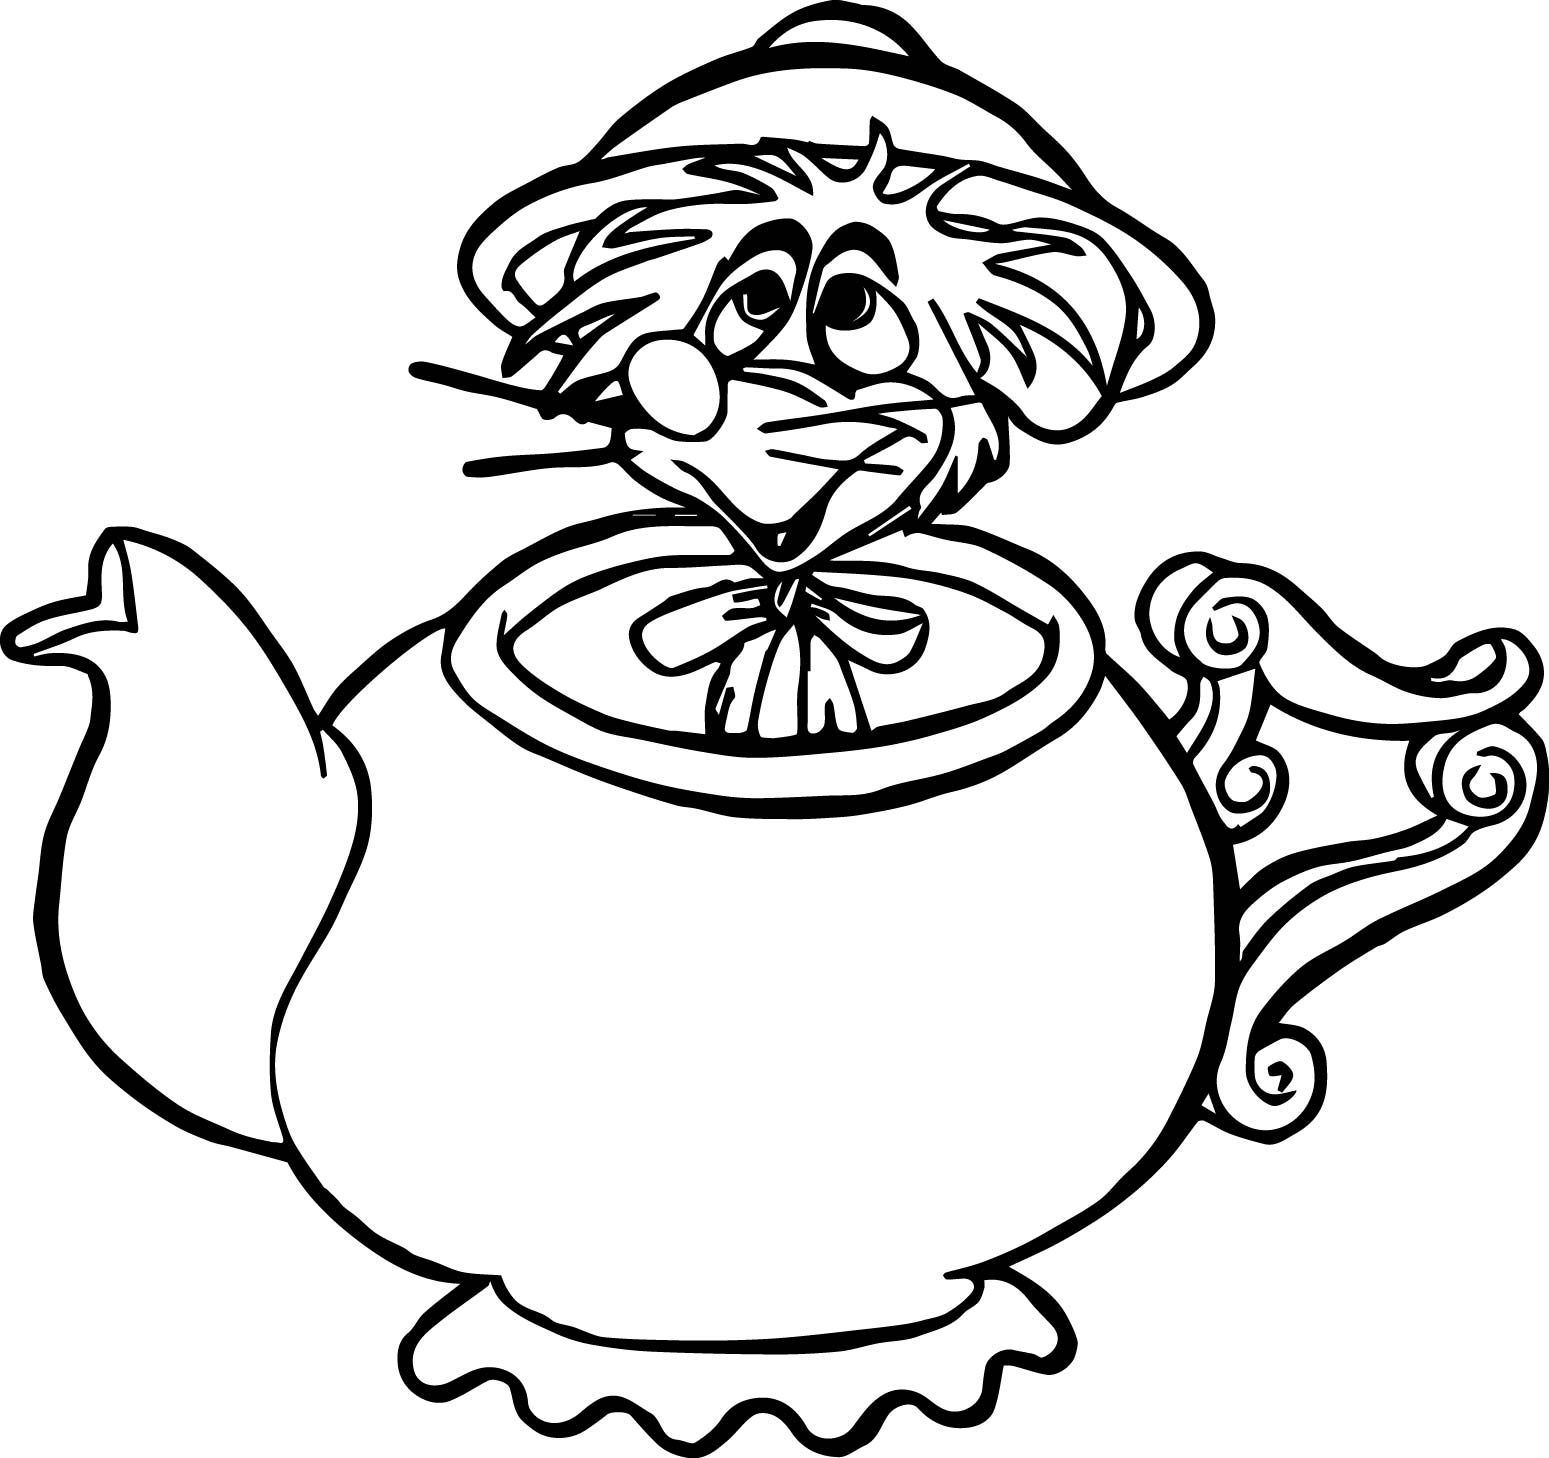 Alice In The Wonderland Mouse Coloring Pages Wecoloringpage Com In 2020 Coloring Pages Alice Coloring Books